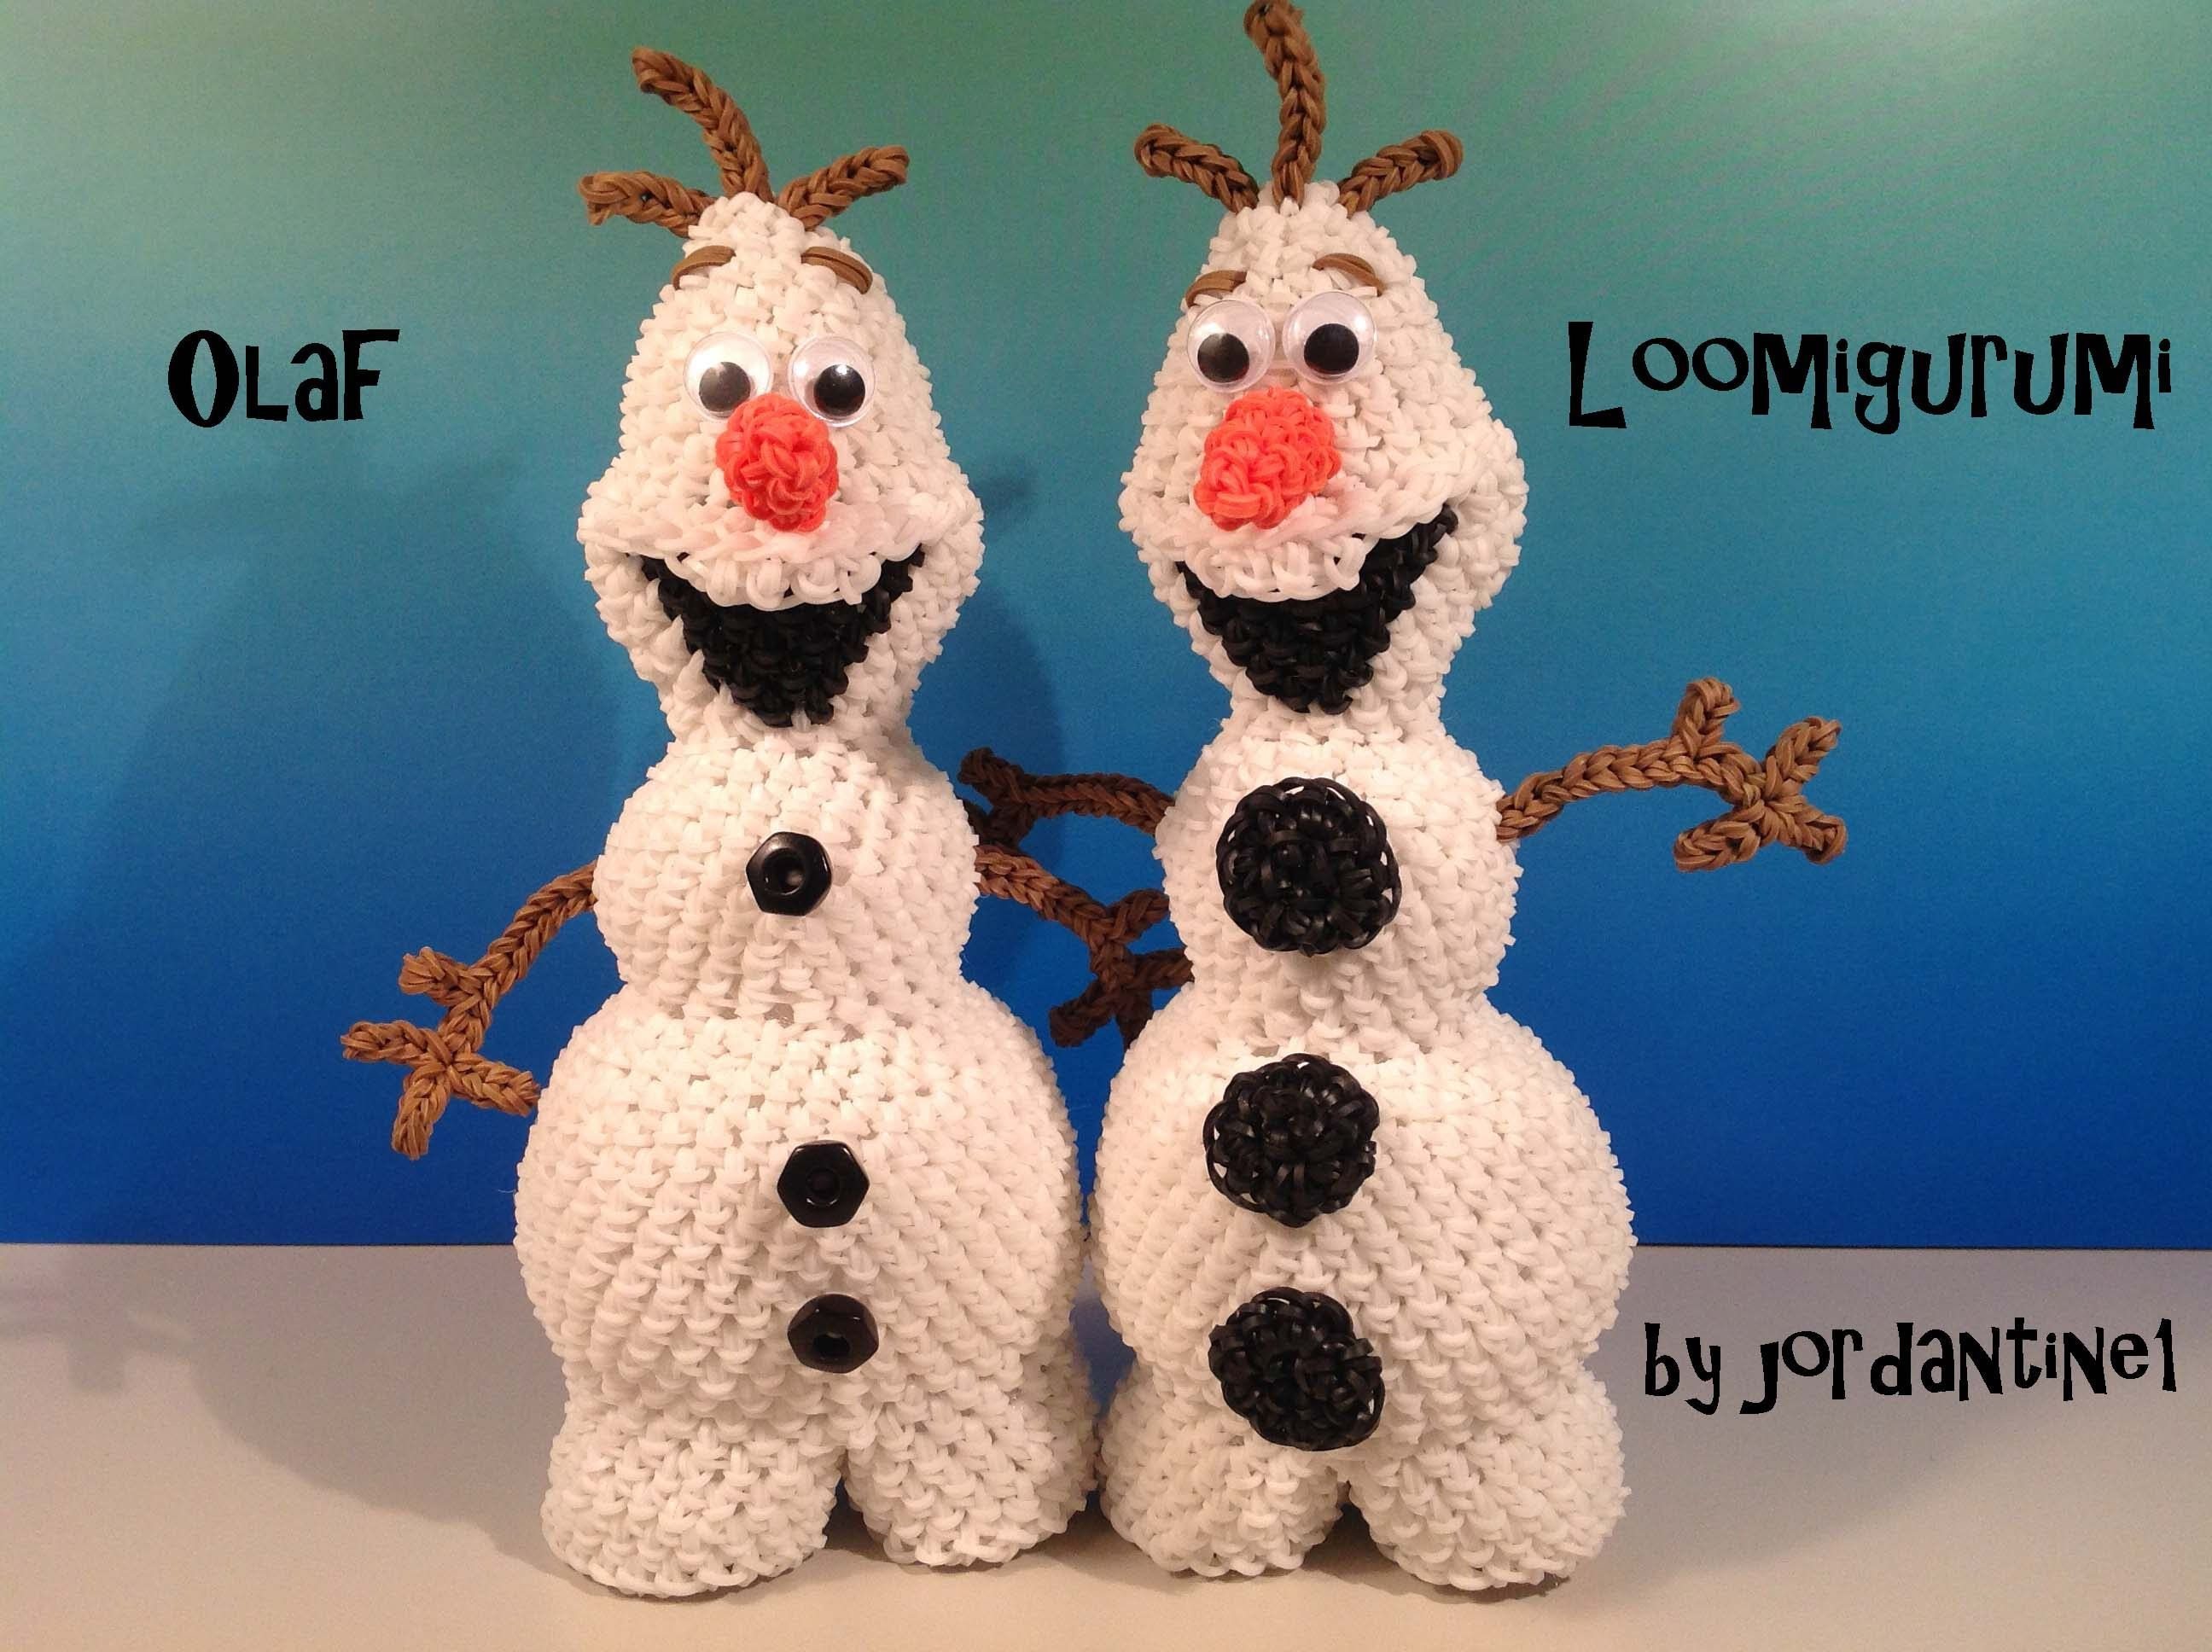 Amigurumi Loom Patterns : Olaf loomigurumi amigurumi frozen snowman part 2 rainbow loom band